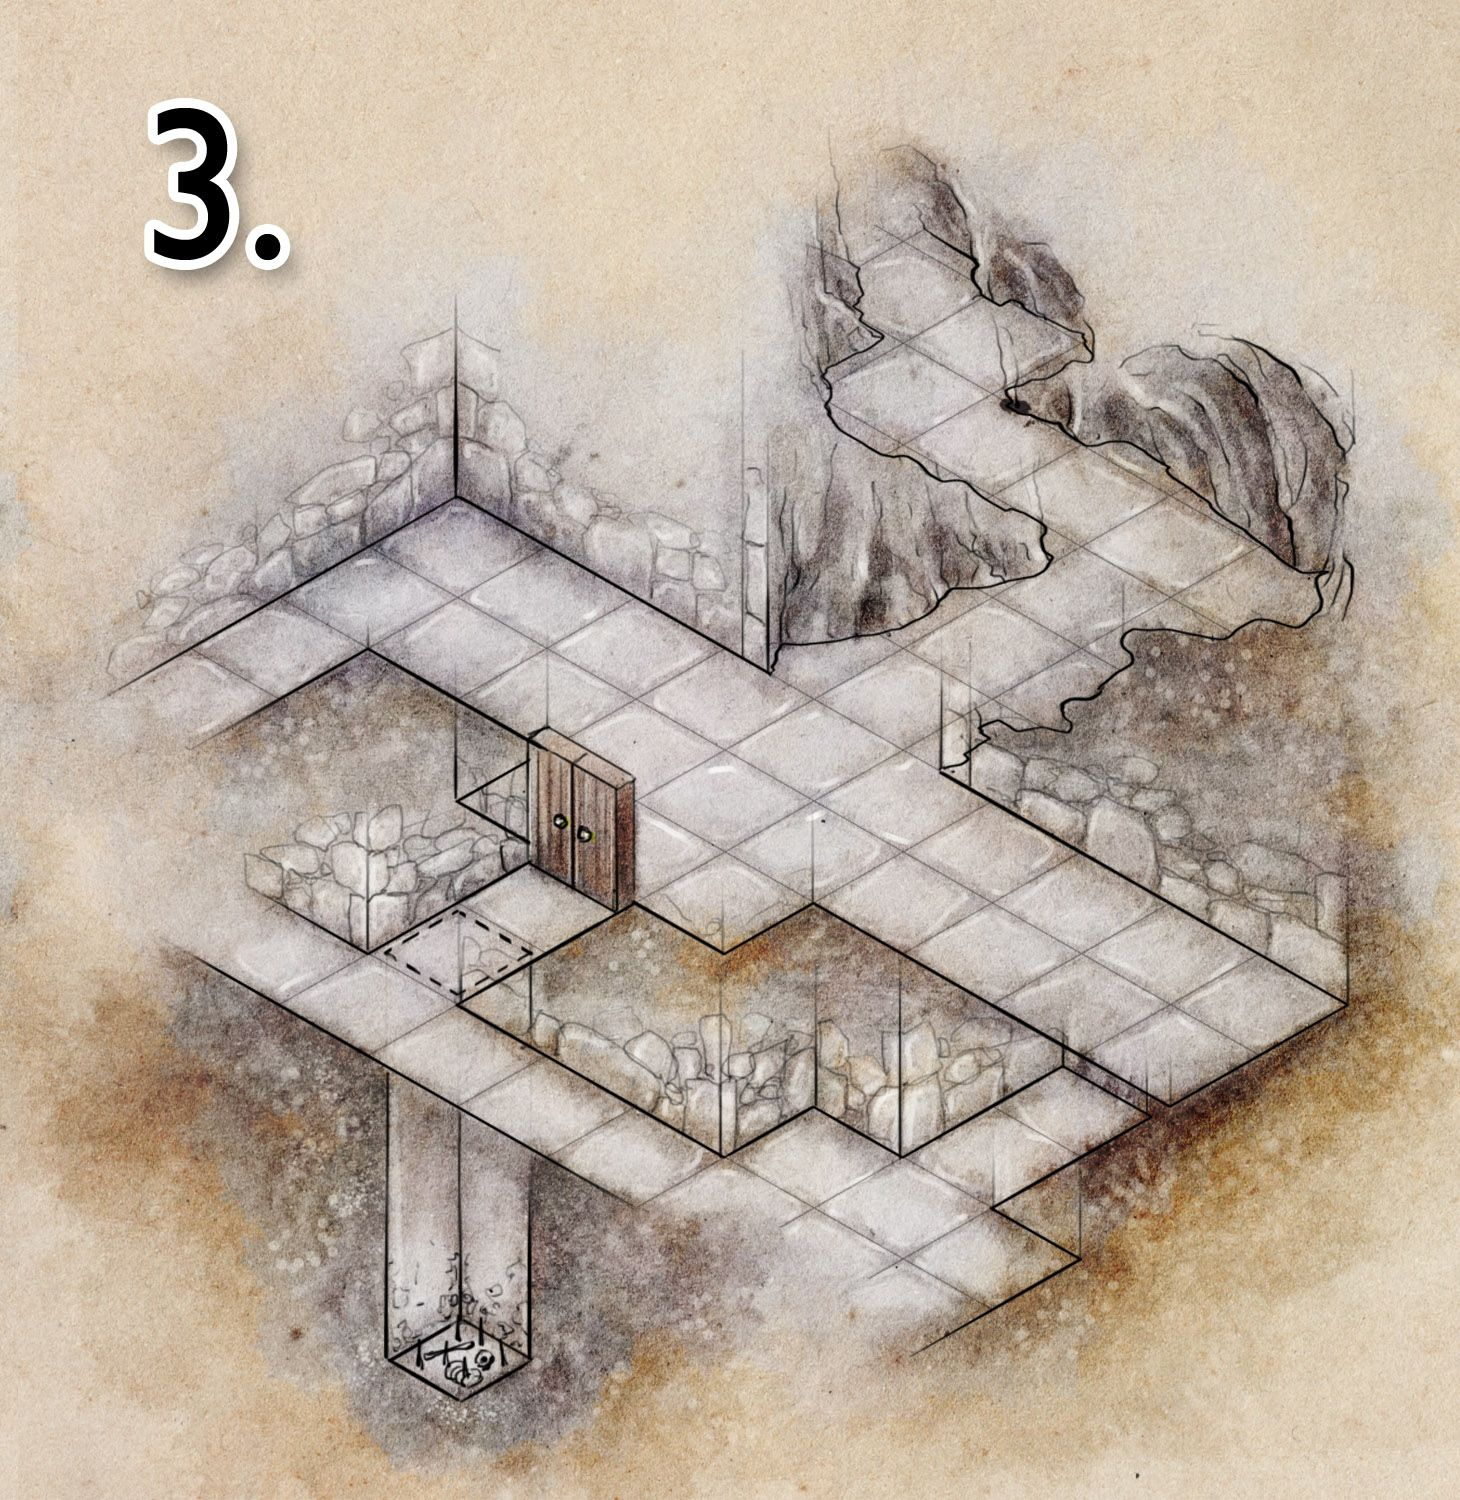 Tutorial: How to draw a basic dungeon map – Niklas Wistedt ...